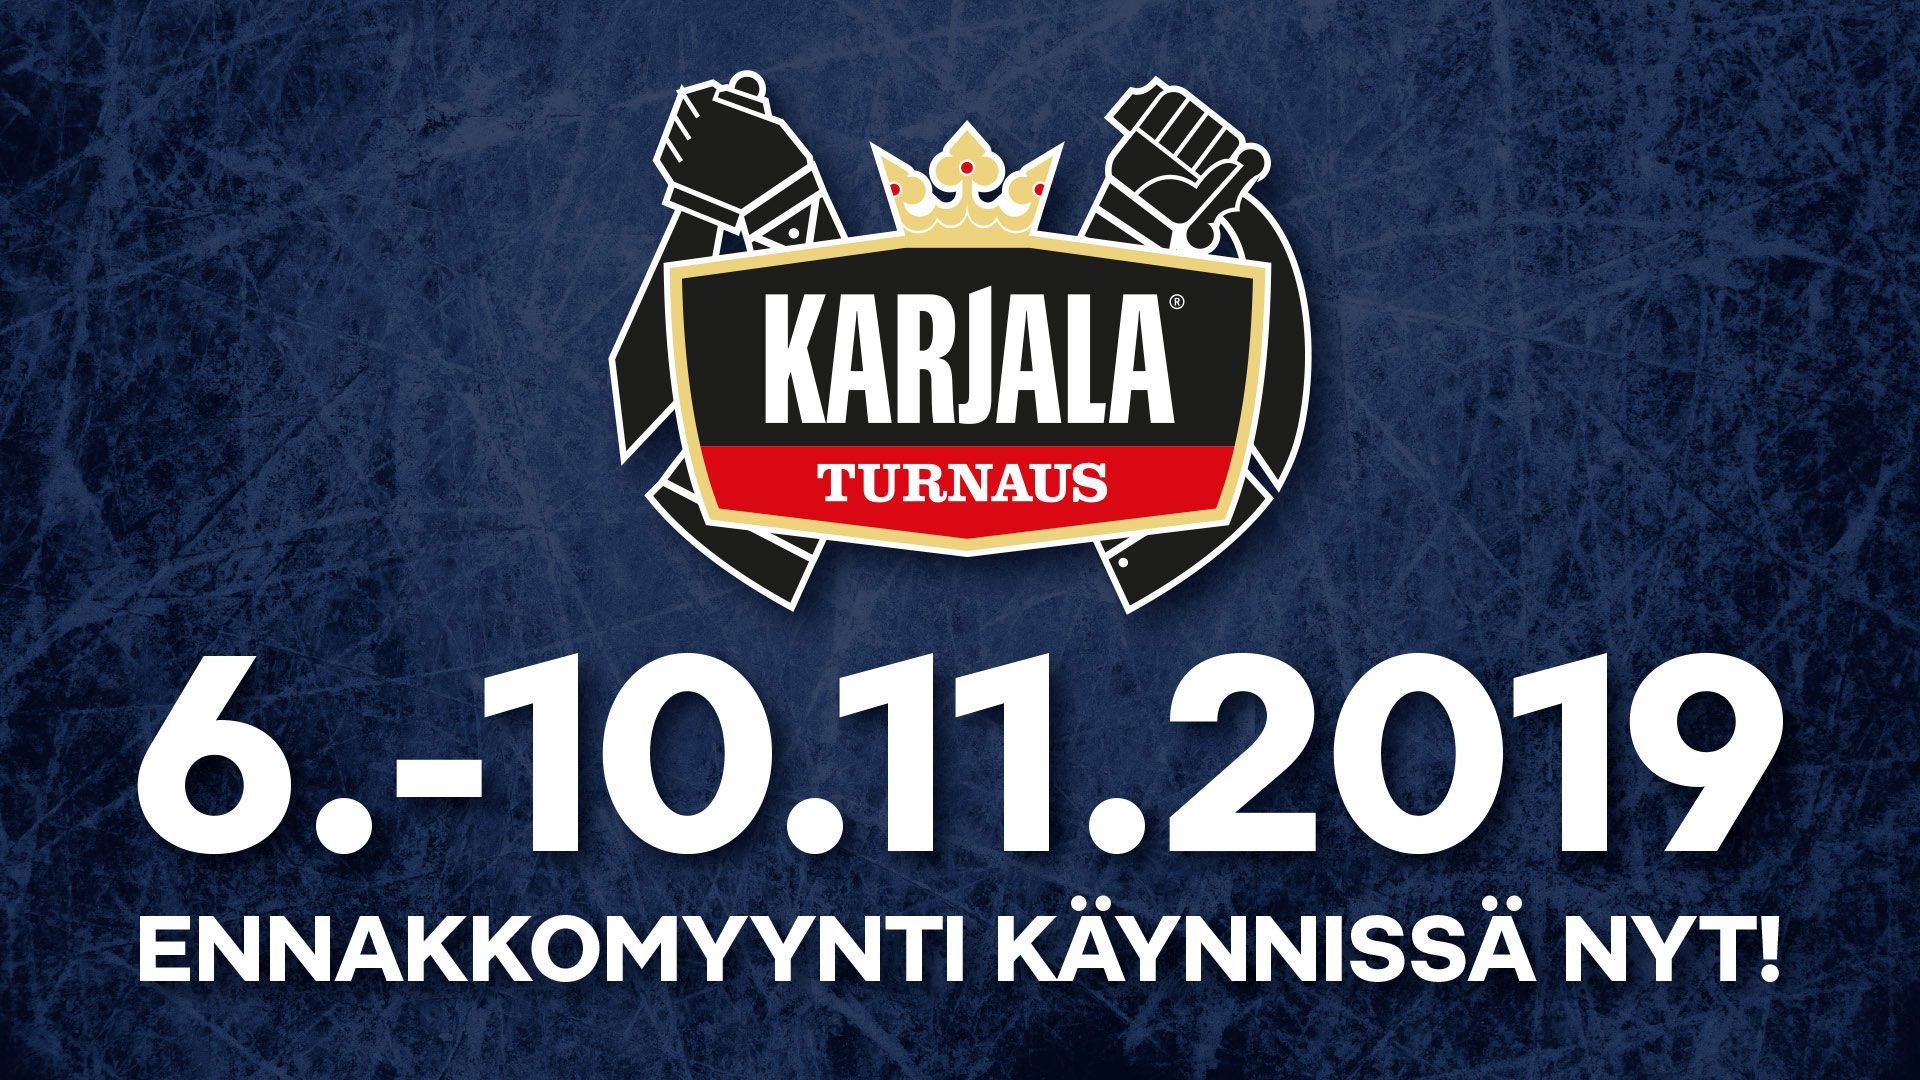 Link to event Karjala Tournament 2019